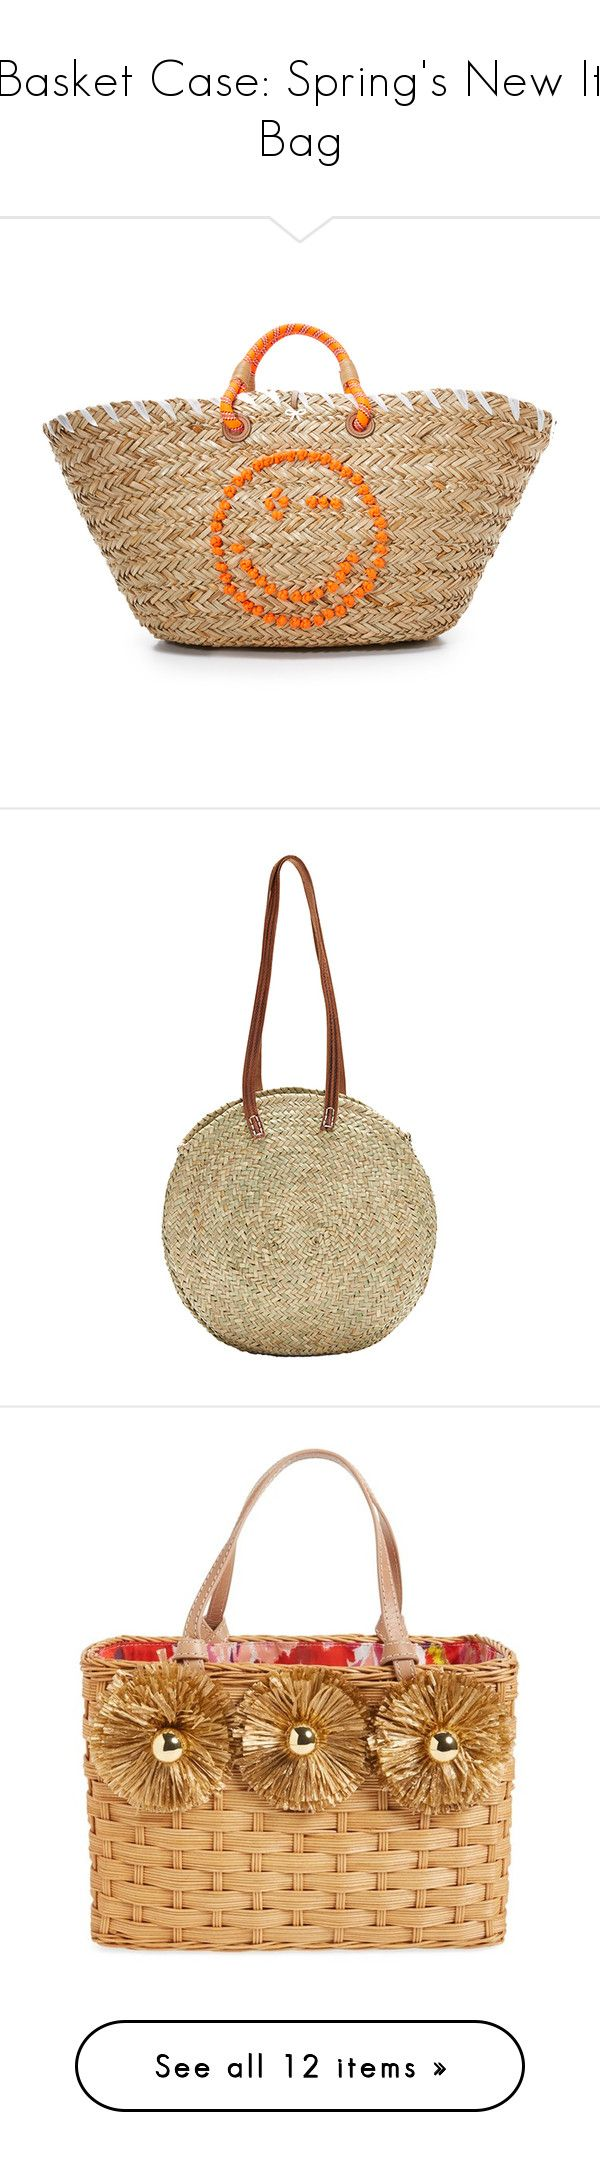 """Basket Case: Spring's New It Bag"" by polyvore-editorial ❤ liked on Polyvore featuring basketbags, bags, handbags, tote bags, natural, anya hindmarch tote, straw tote handbags, beige handbags, handbags totes and tote handbags"